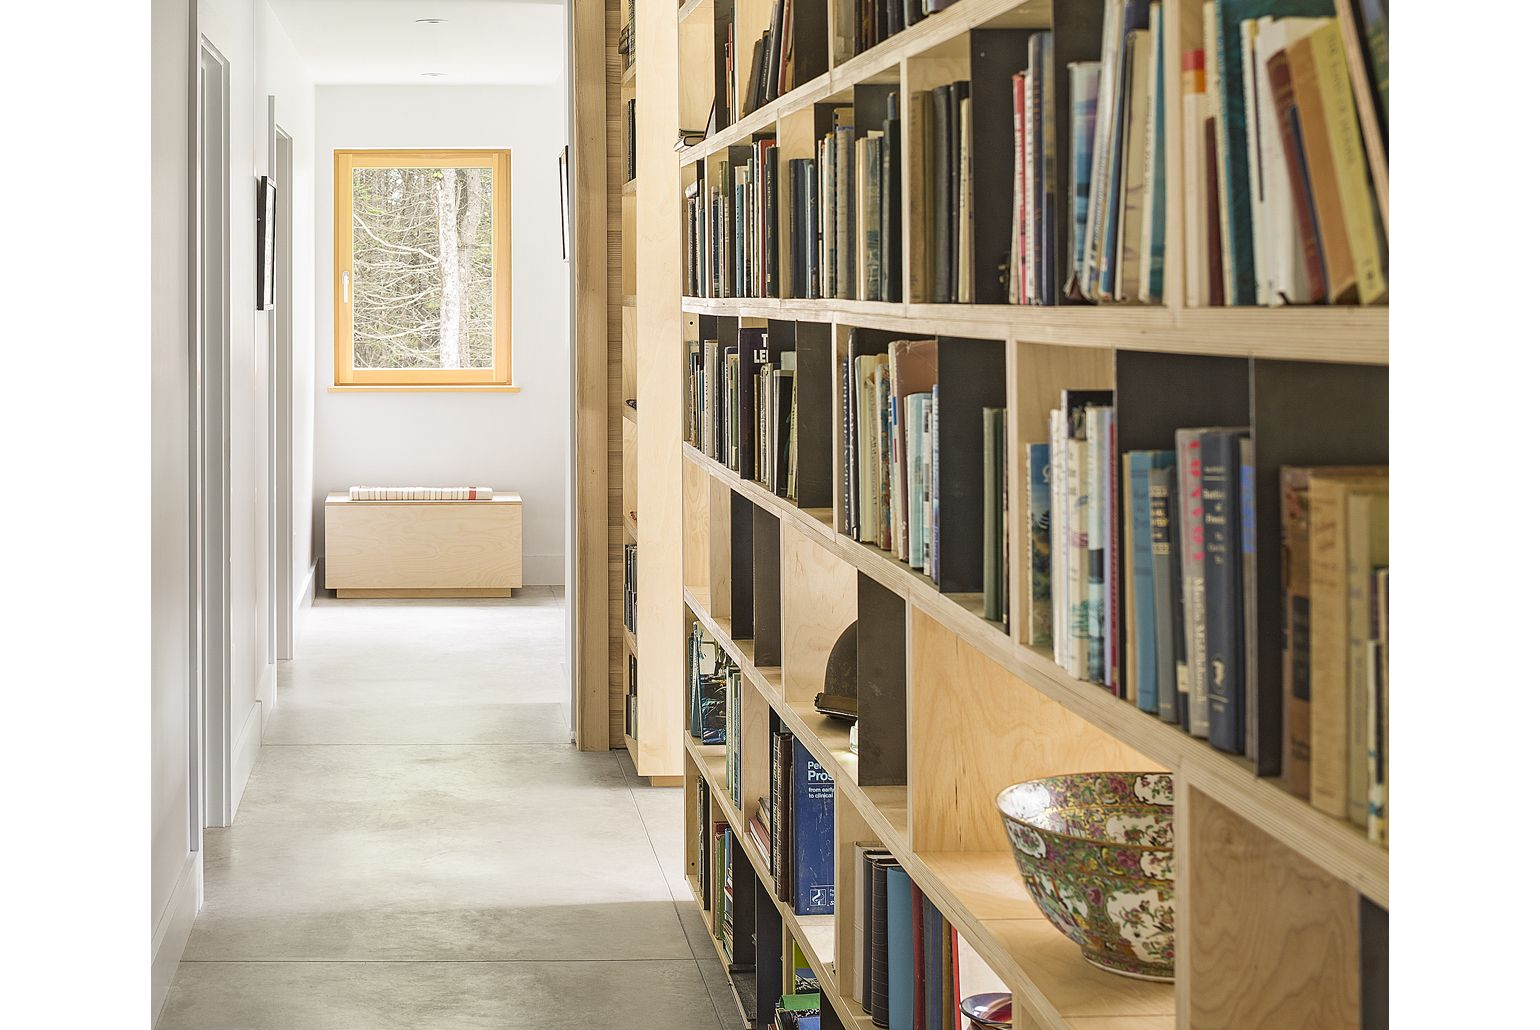 The custom bookcase allows light to pass through and into the hall